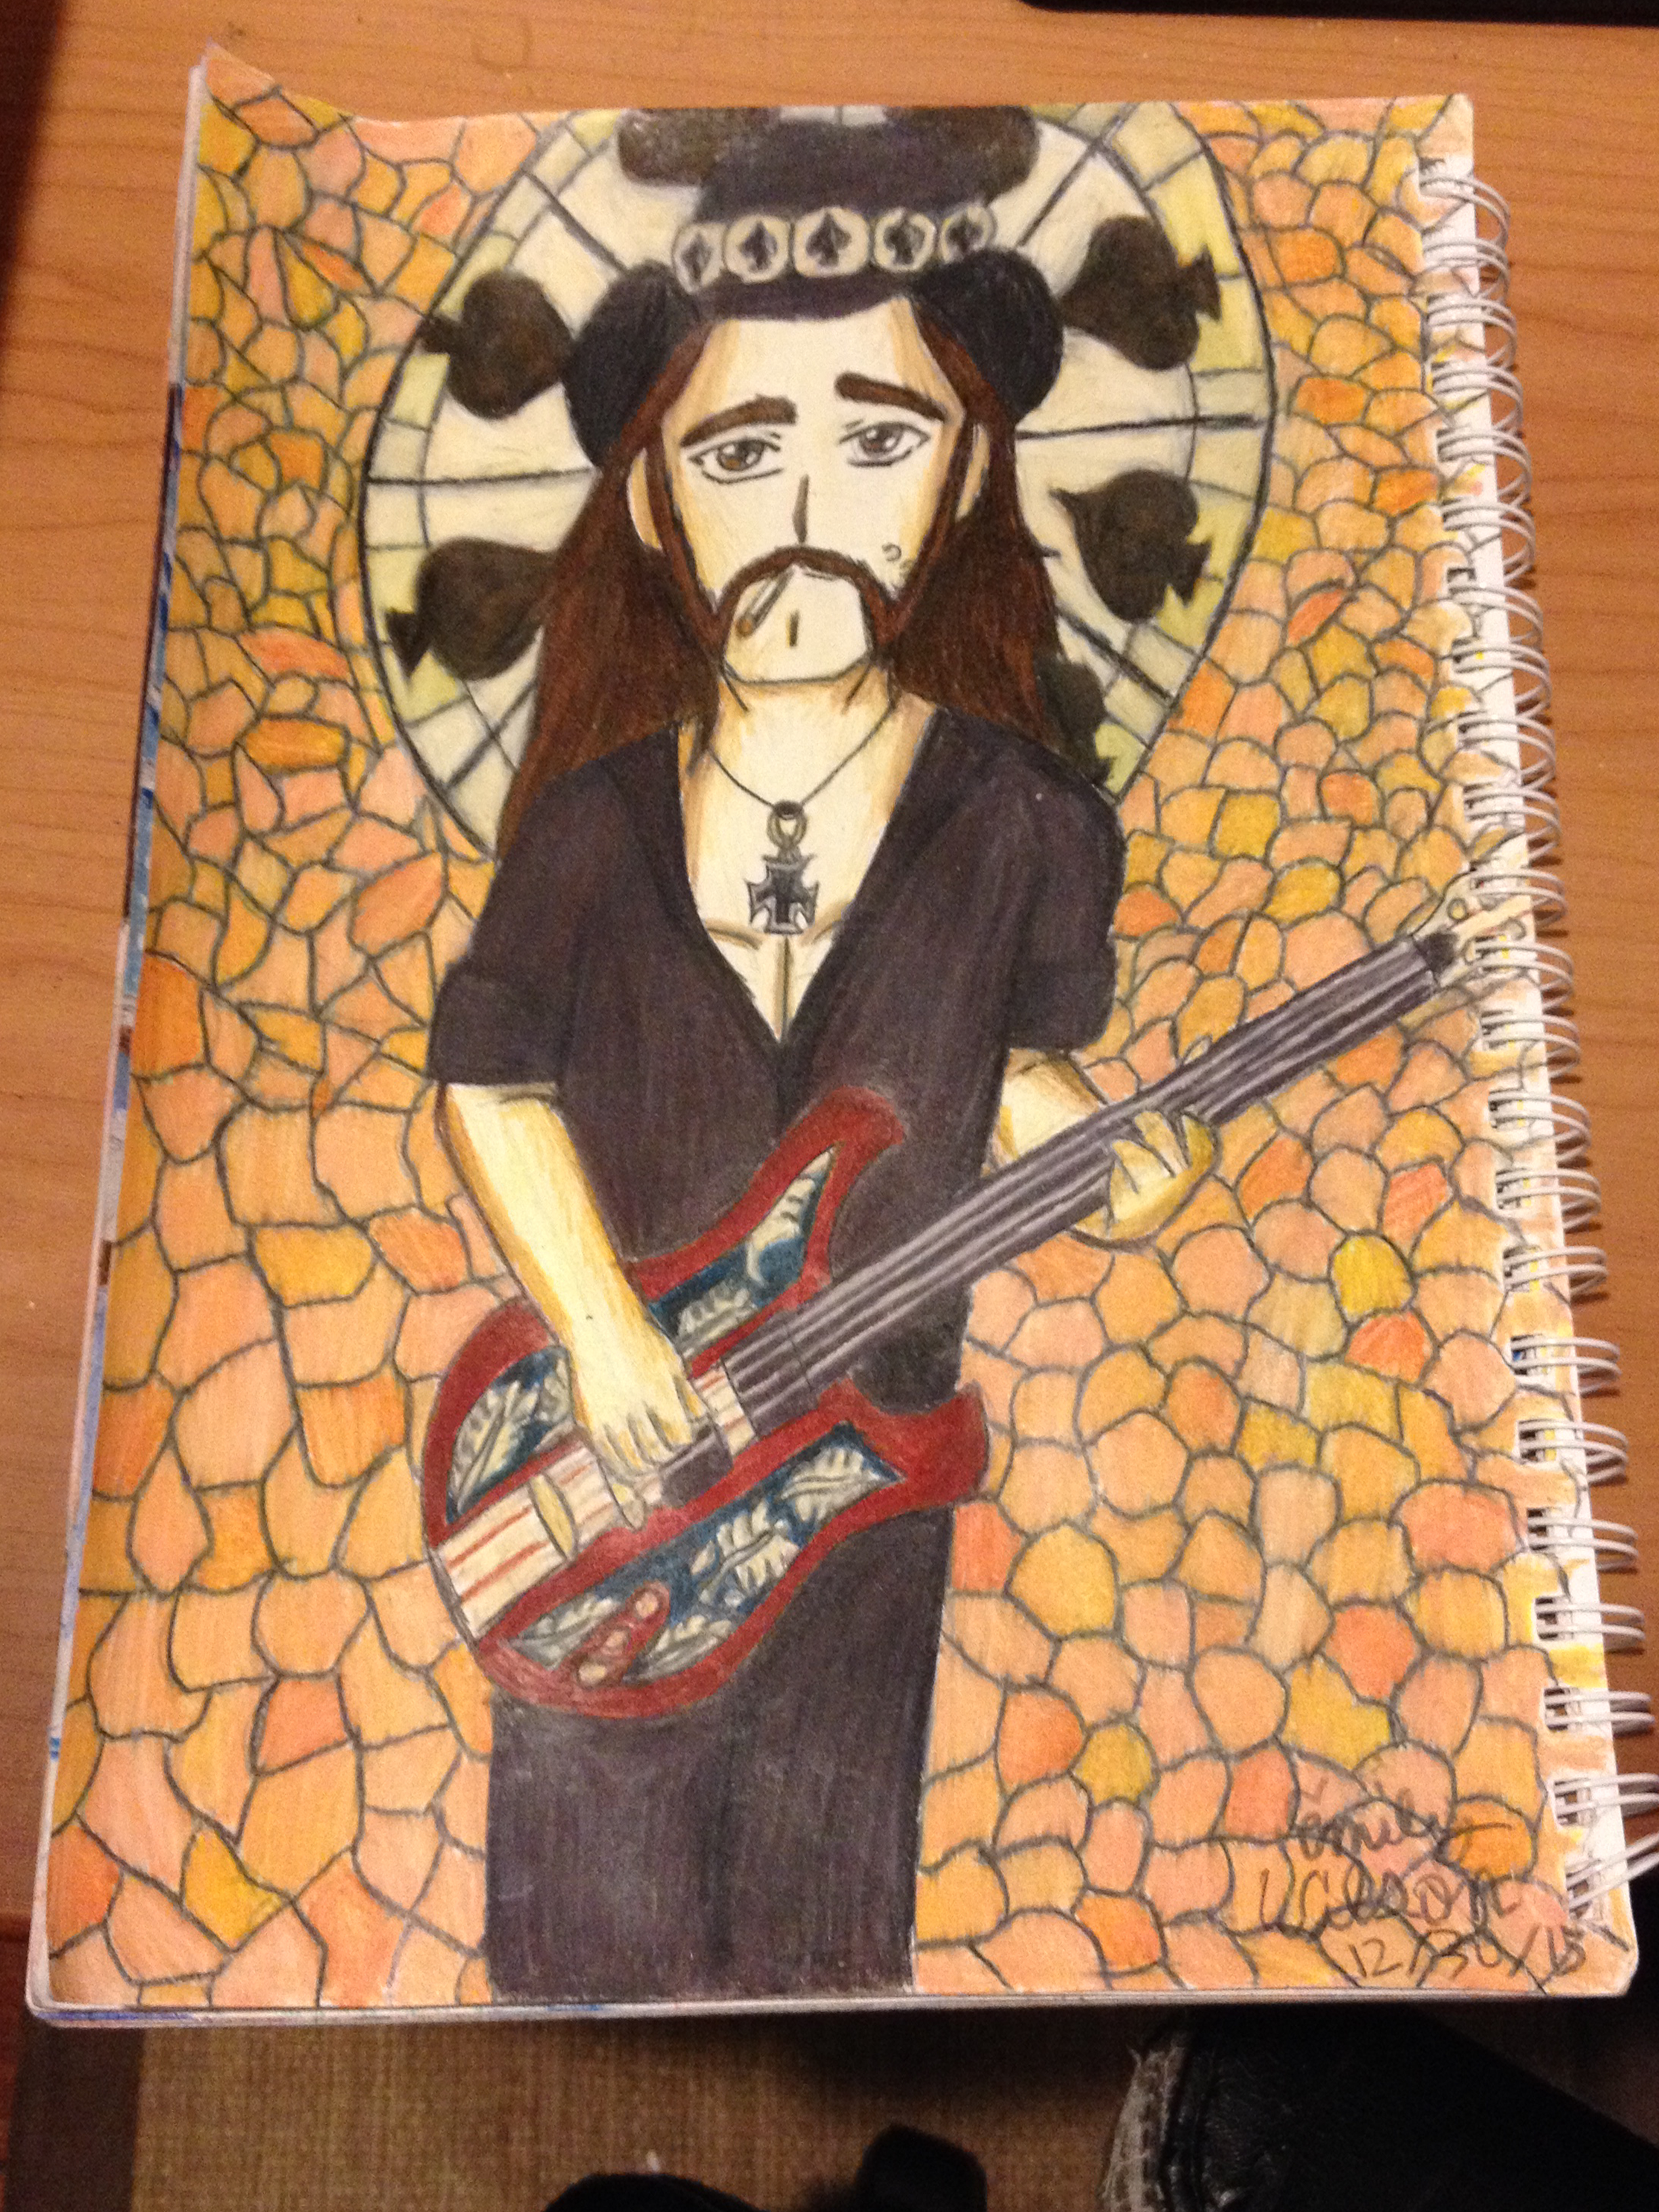 Sketchbook Drawing 21 - Lemmy Kilmister (RIP)